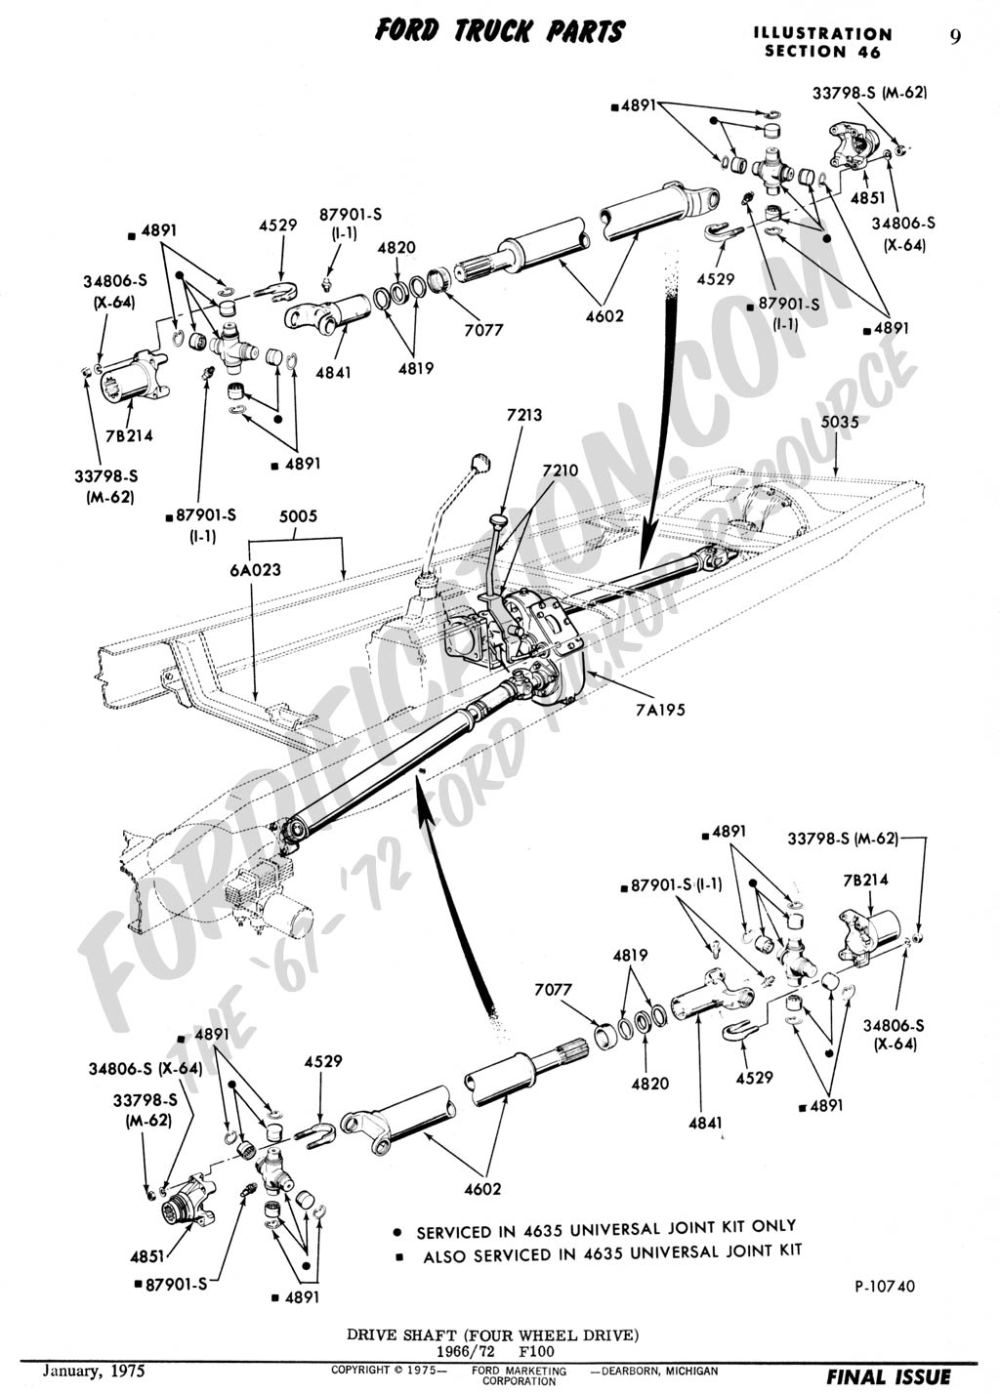 medium resolution of 1999 ford ranger 4x4 front axle diagram images gallery ford f350 front drive axle diagrams